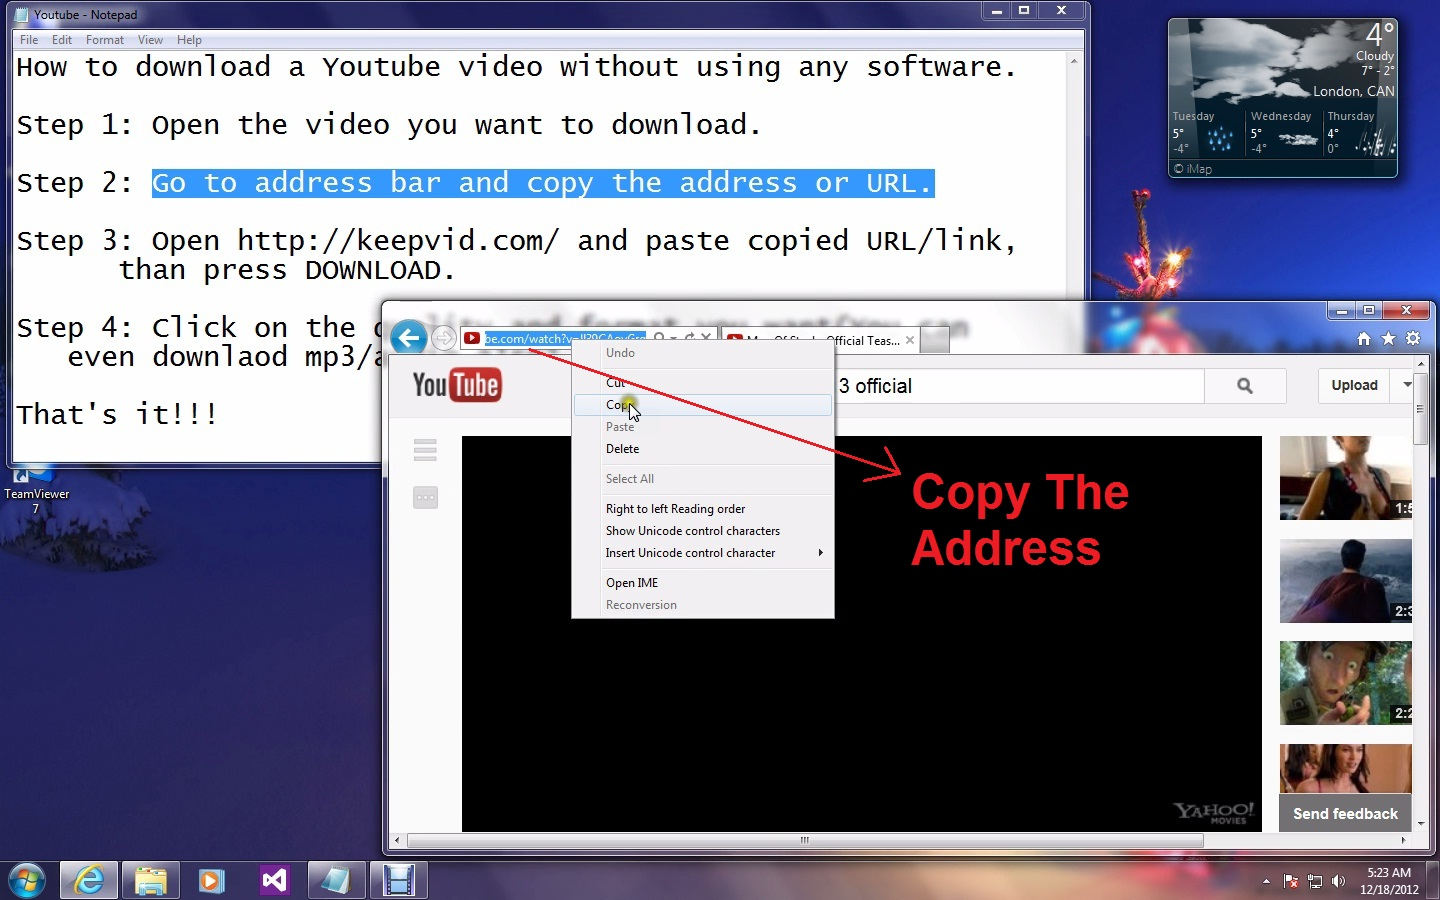 How to download youtube video no software required techno gadget step 3 open httpkeepvid and paste the copied urllink than press downloadnote you may need to download java software if you dont have ccuart Gallery